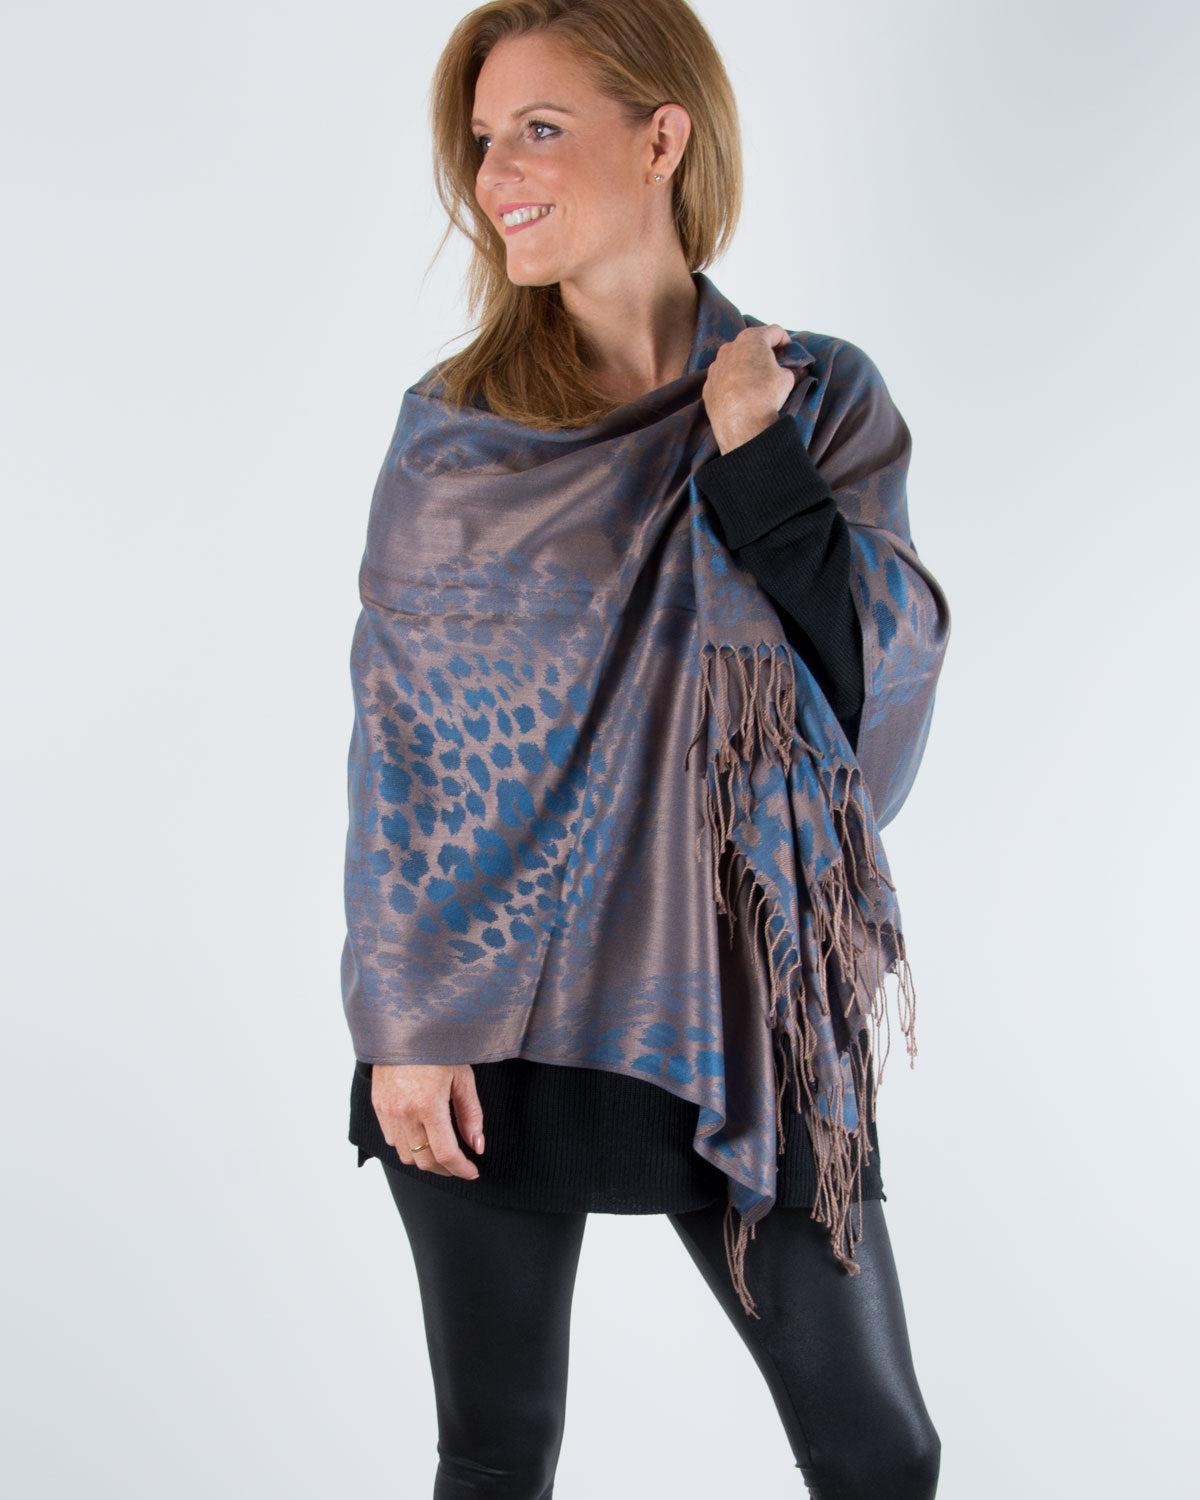 an image showing a blue and bronze animal print pashmina